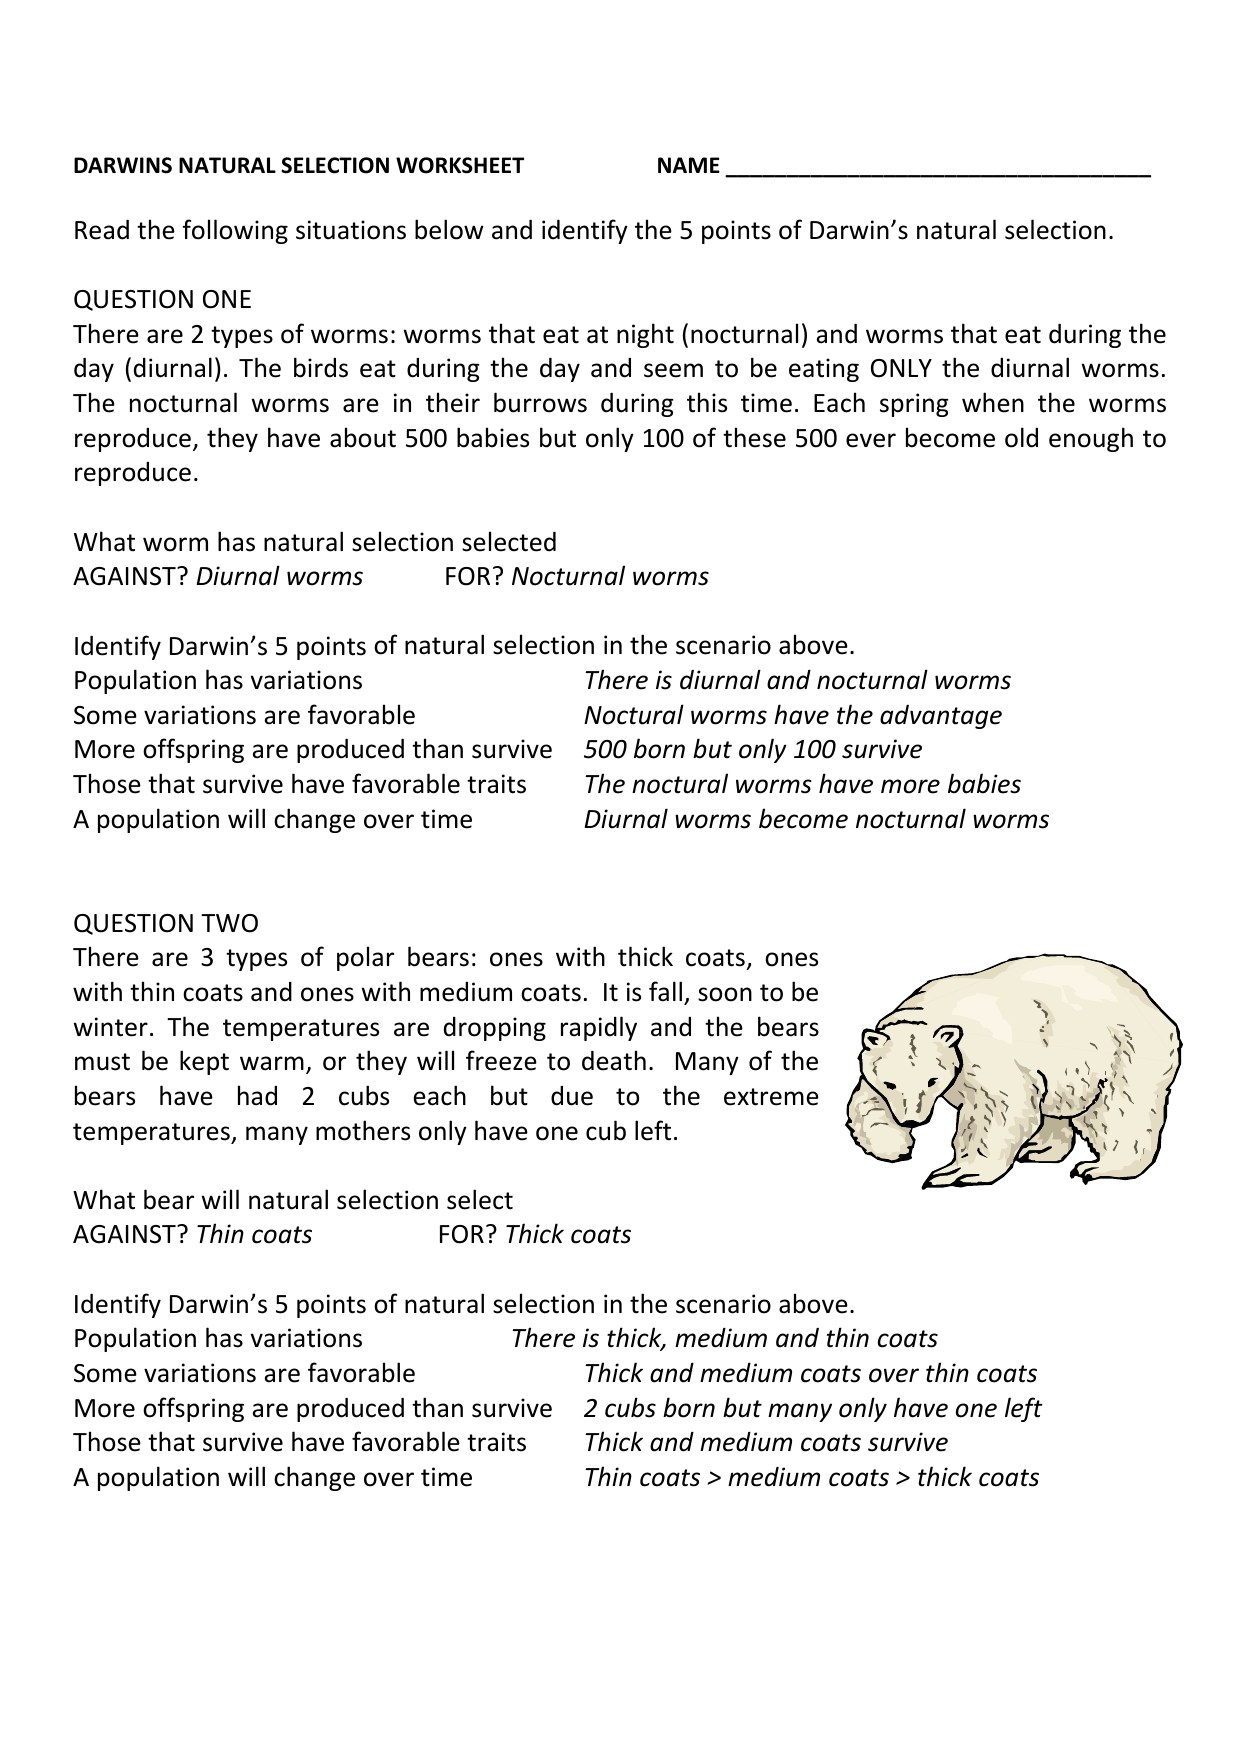 Worksheet Charles Darwin Natural Selection